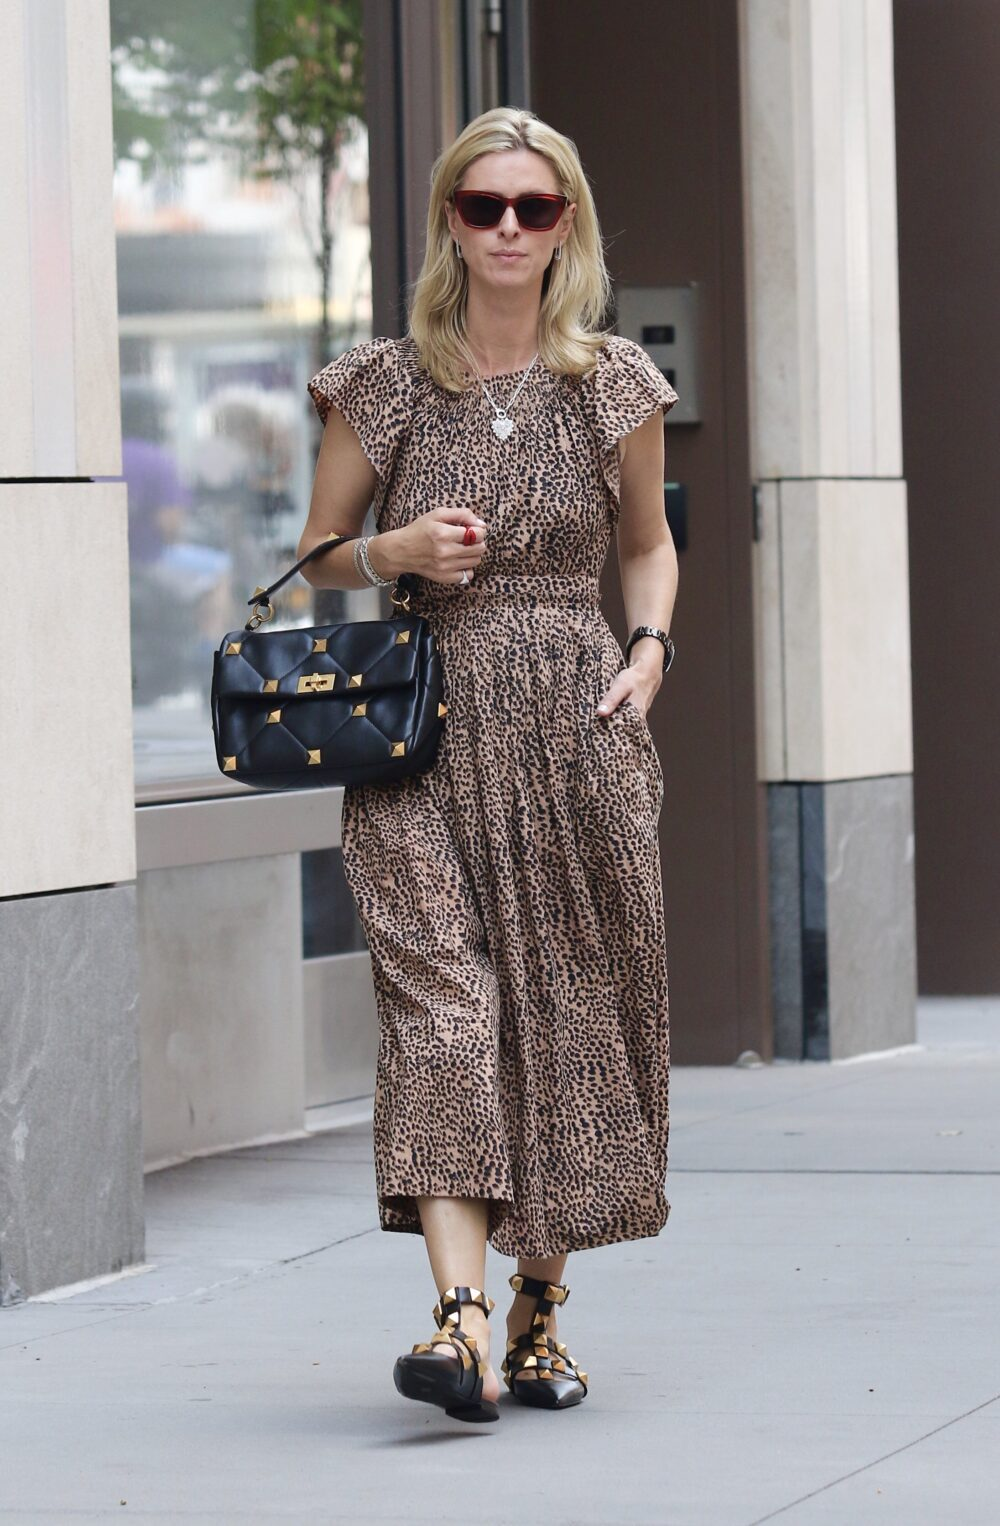 Nicky Hilton looks stylish sporting a leopard print dress while braving the heatwave in NYC